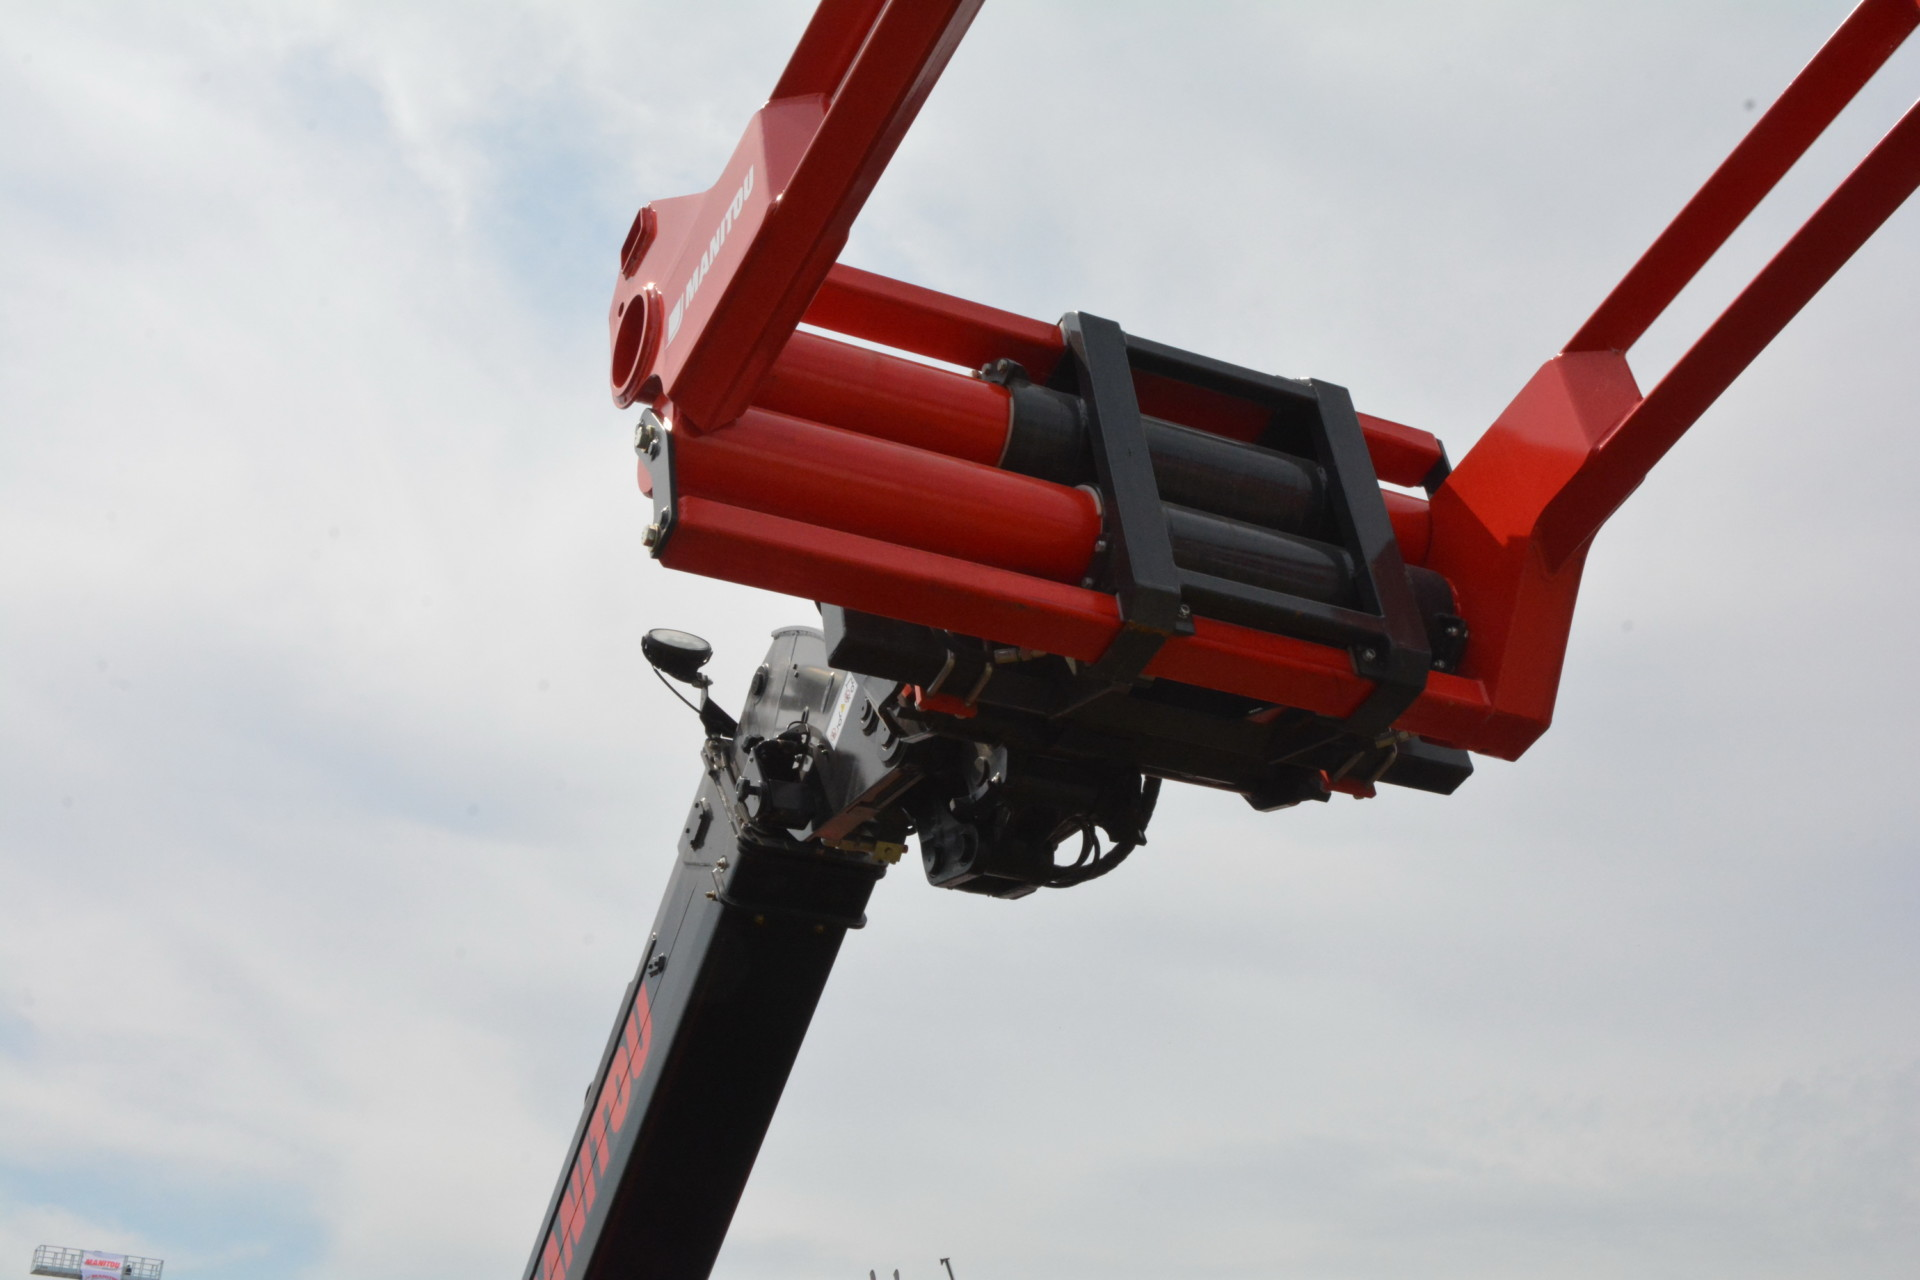 Libramont 2019: Camera op Manitou-arm